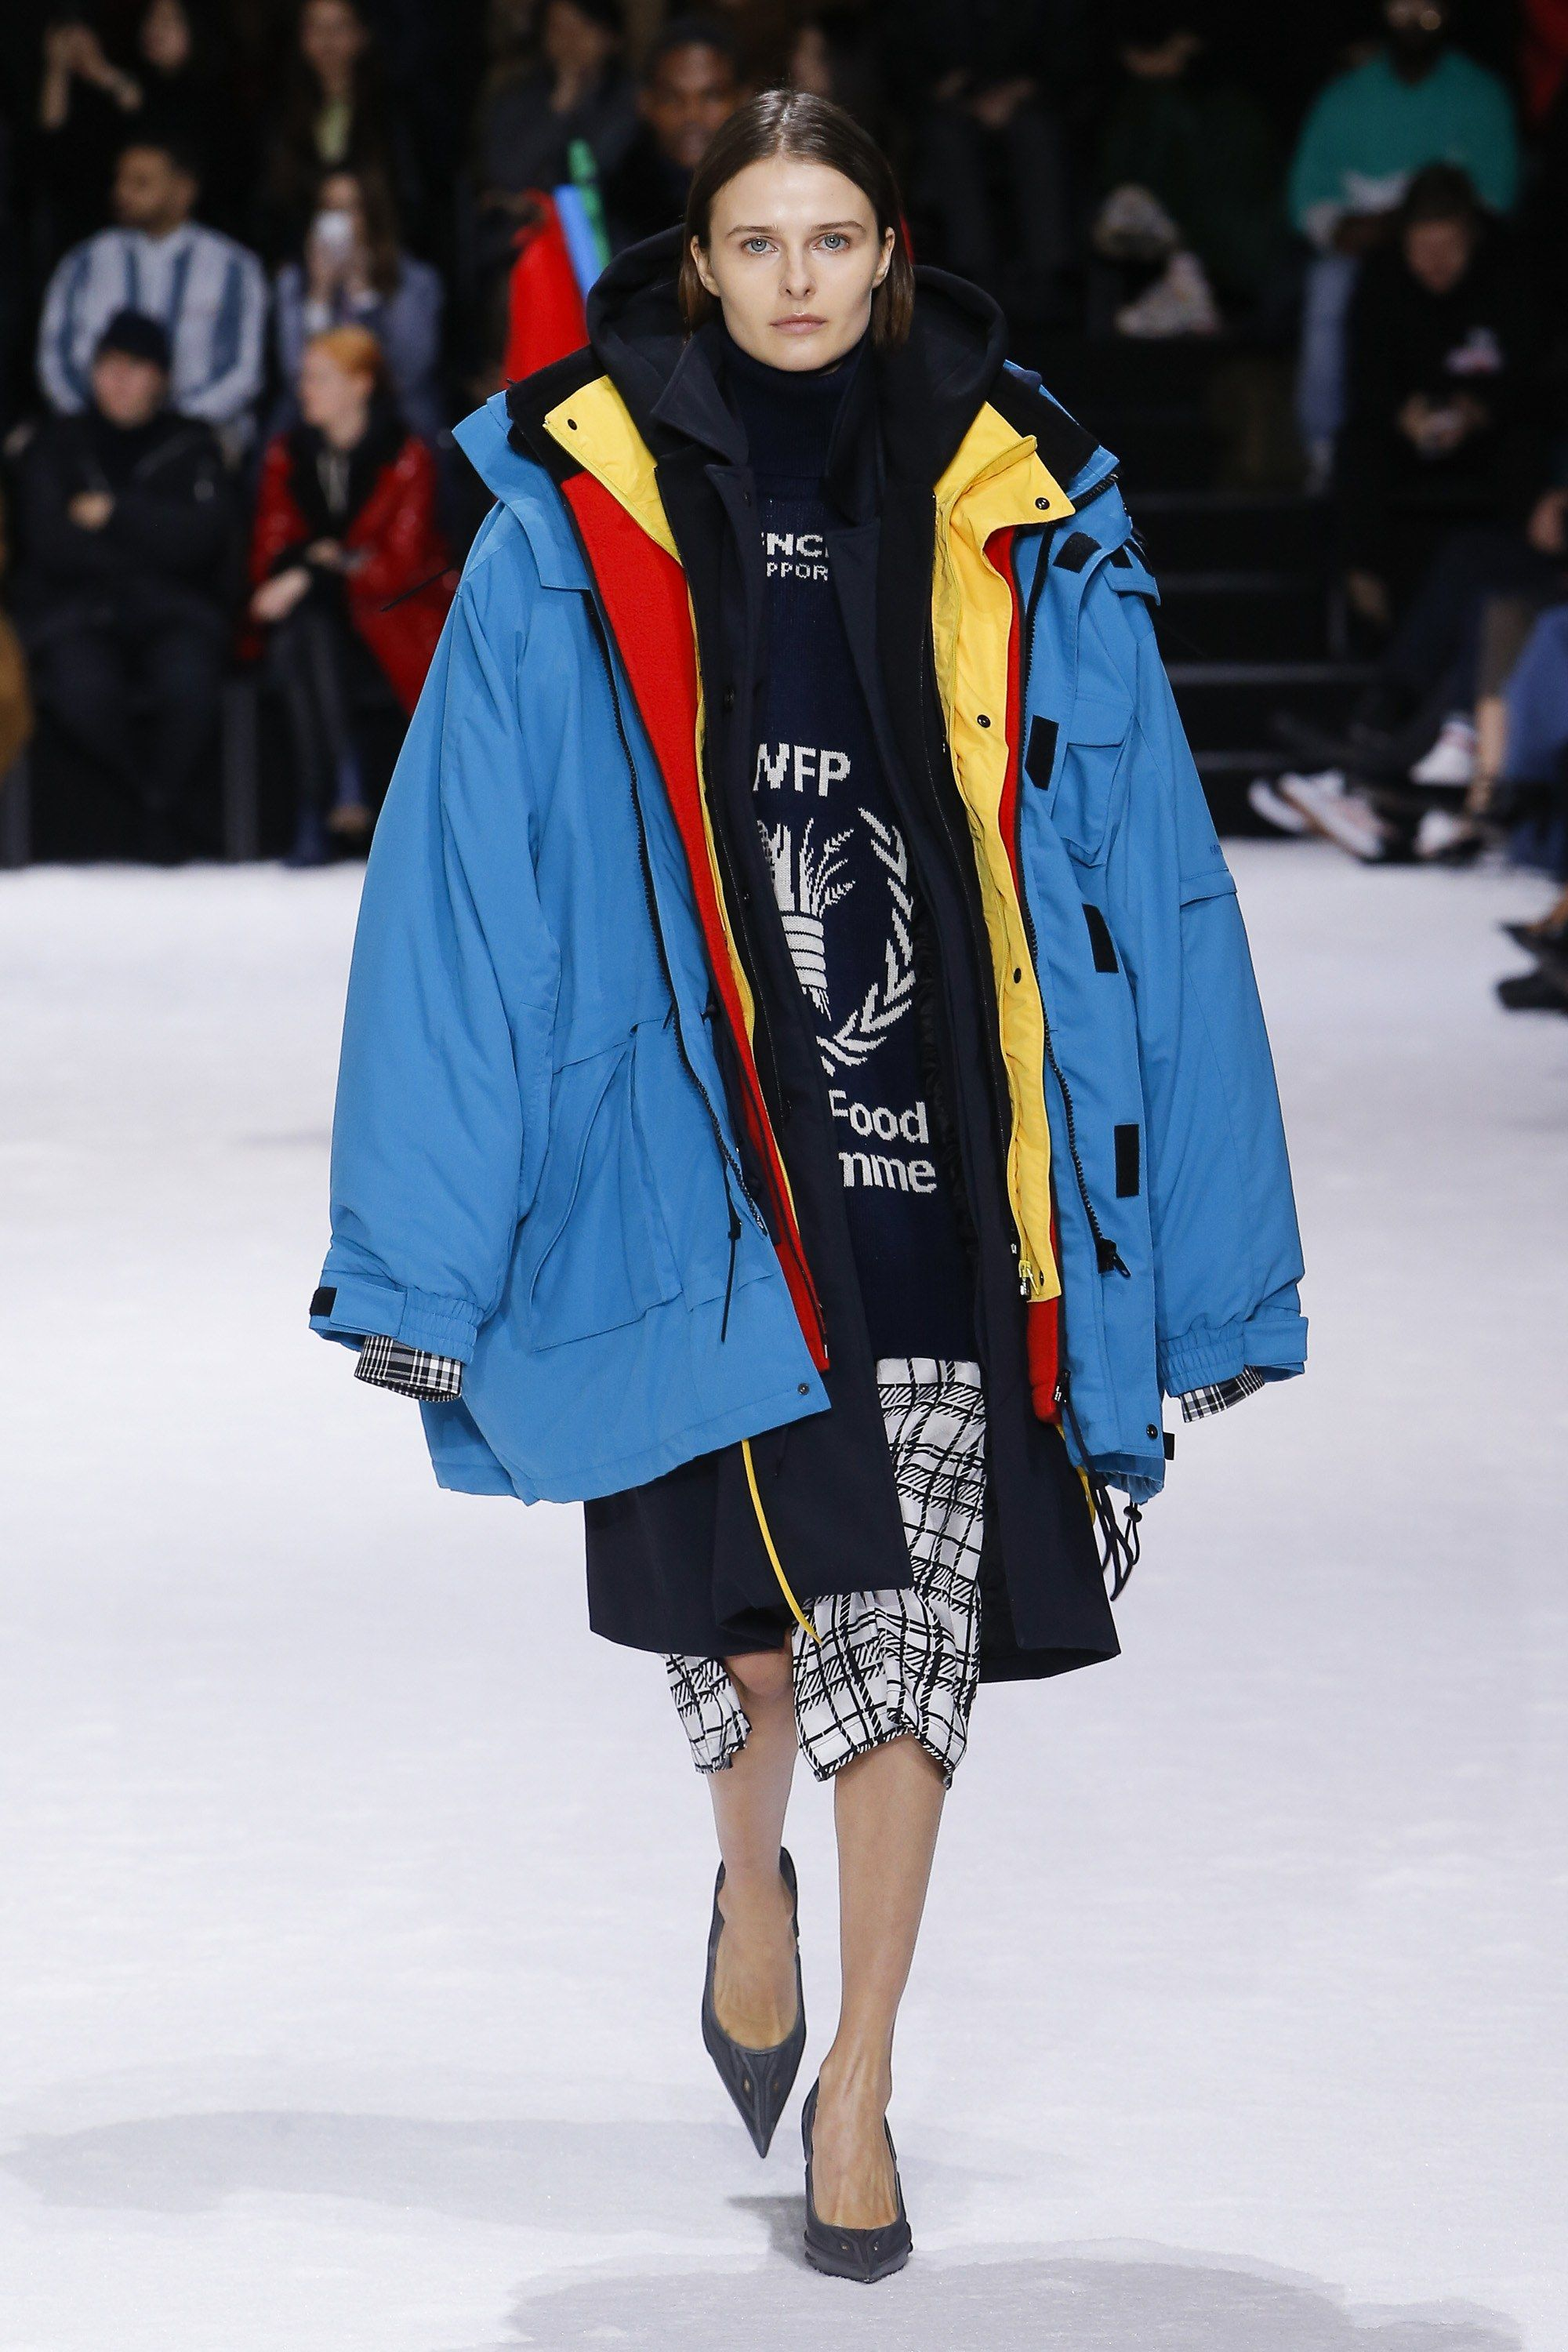 eeeaa7c11a53 Balenciaga Fall 2018 Ready-to-Wear Collection - Vogue Let's get ready to  LAYER!